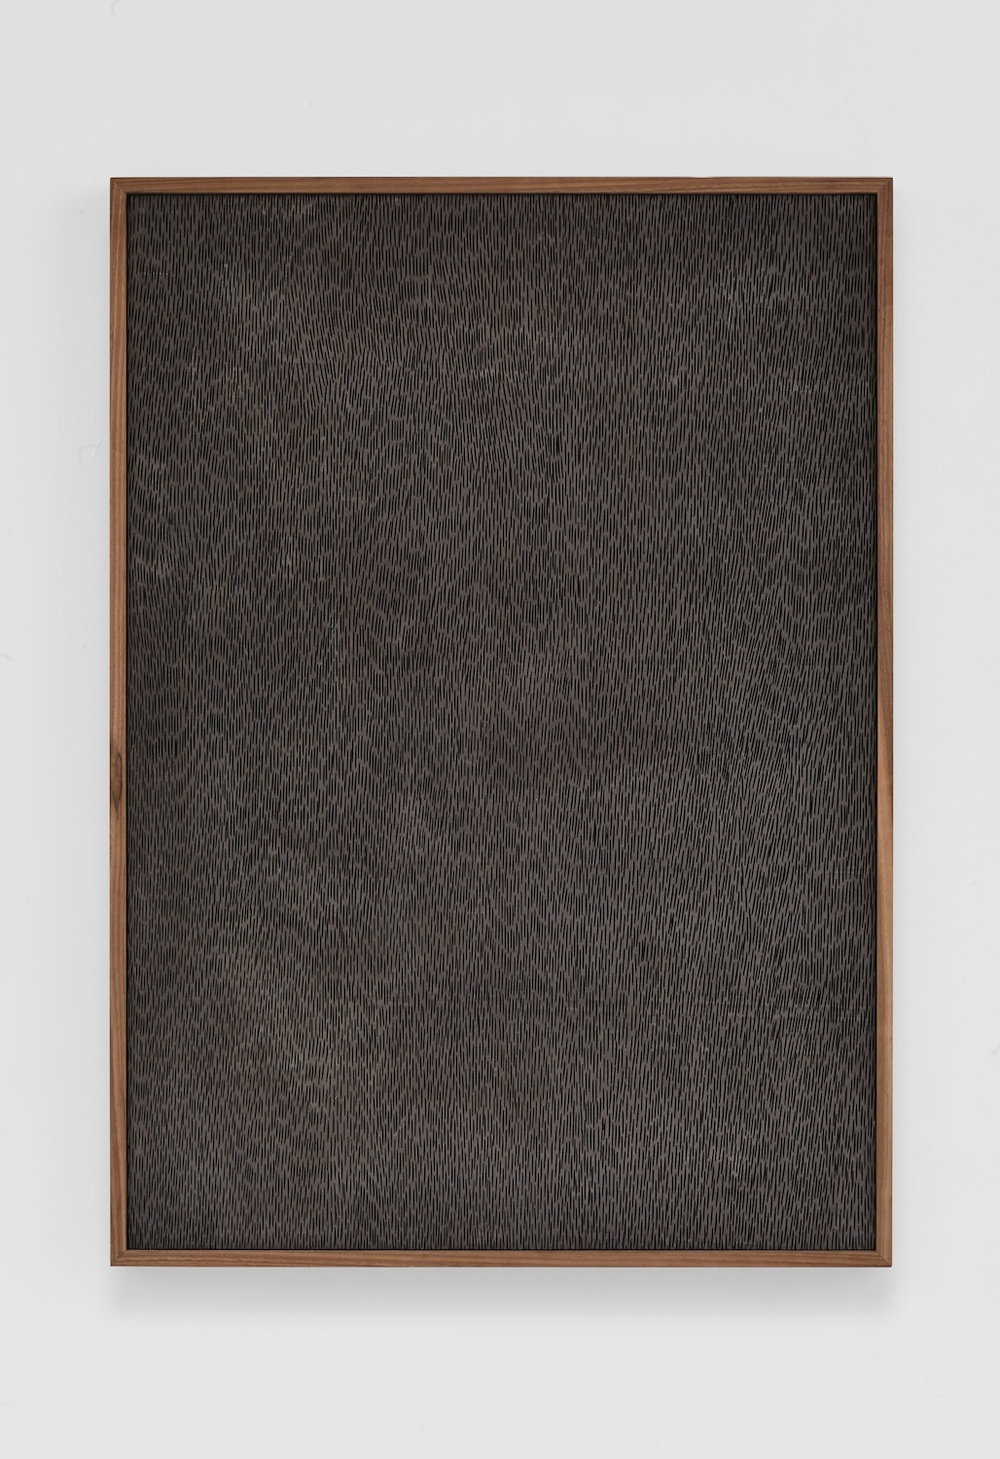 Adam Pendleton  Untitled (Etched Plaster)  2014 Pigmented hydrocal in walnut frame 42 ½h x 30 ½w x 2 ½d in AP355